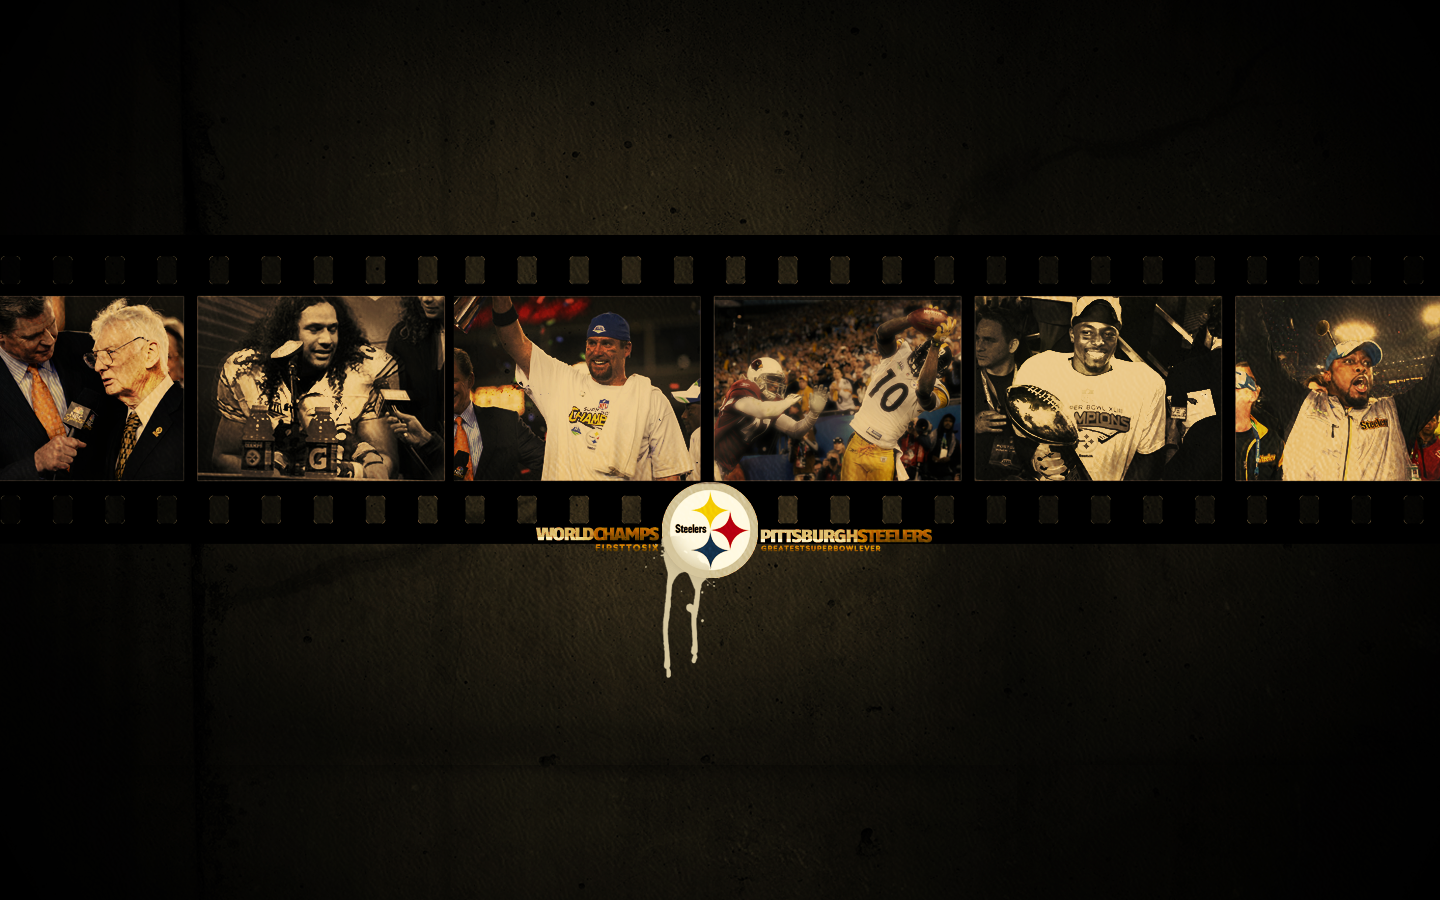 1440x900 - Steelers Desktop 48